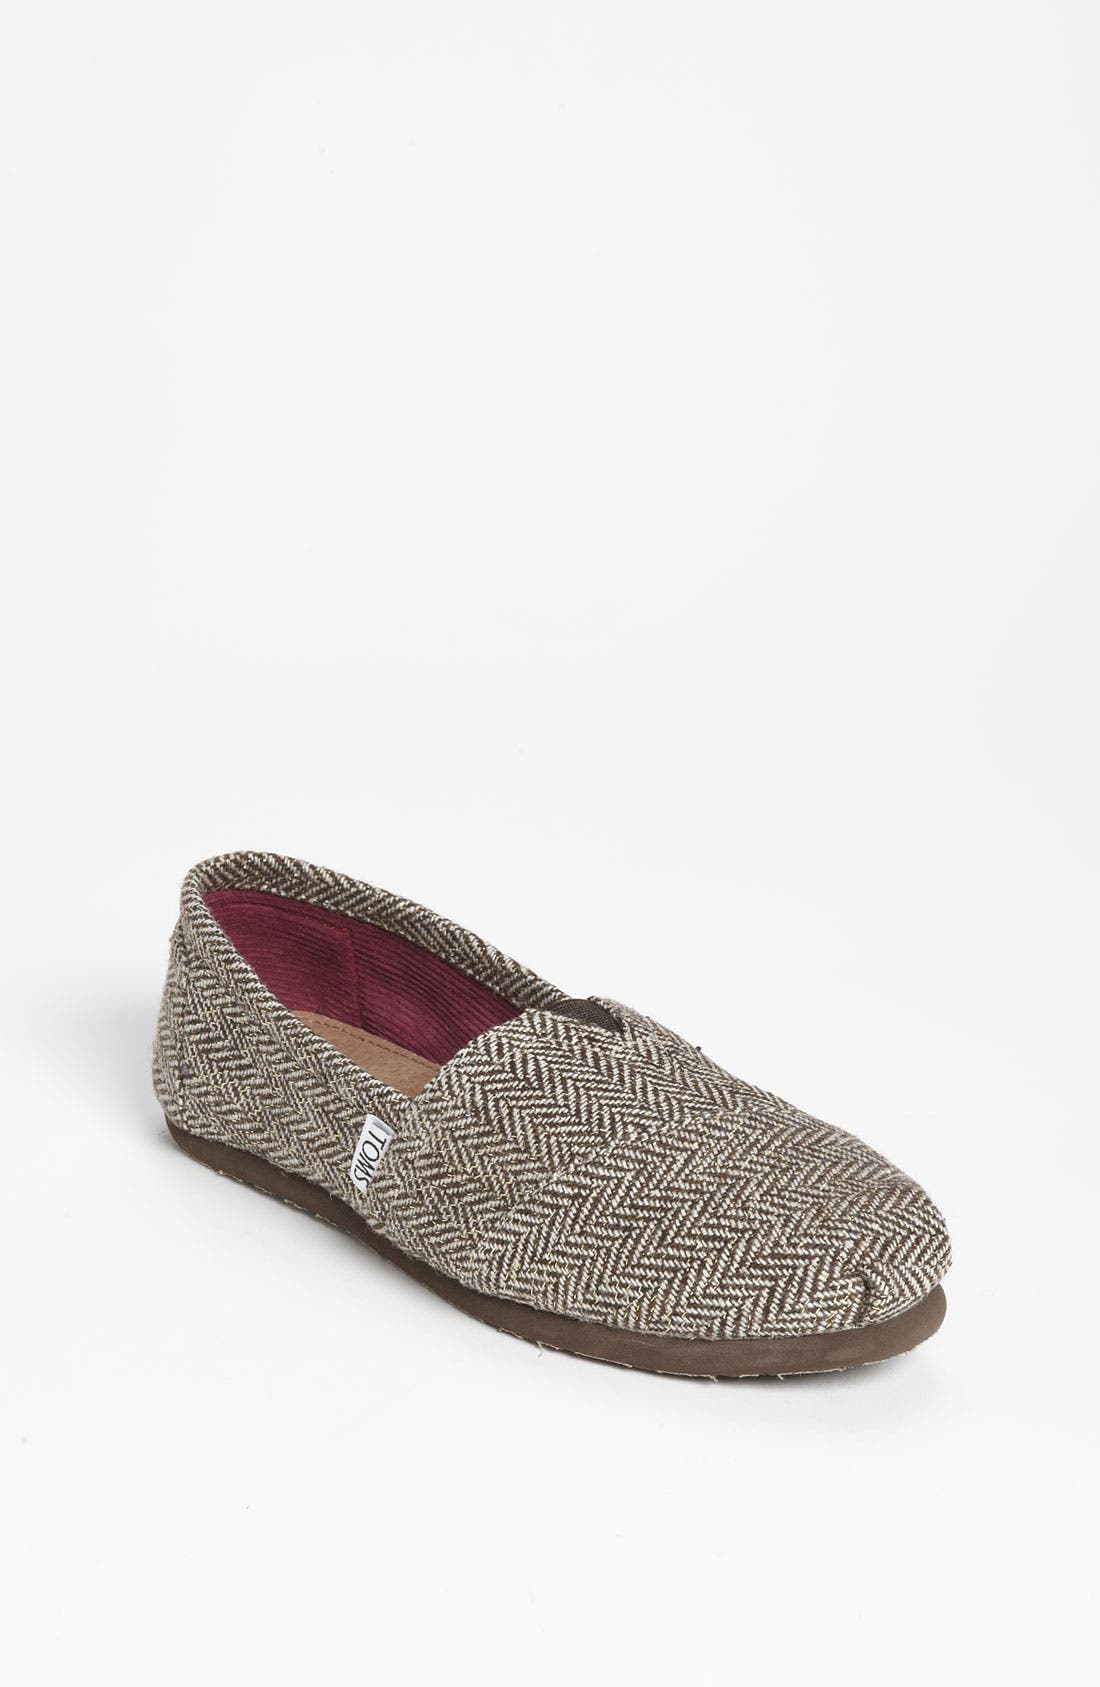 Main Image - TOMS 'Classic' Metallic Herringbone Slip-On (Women)